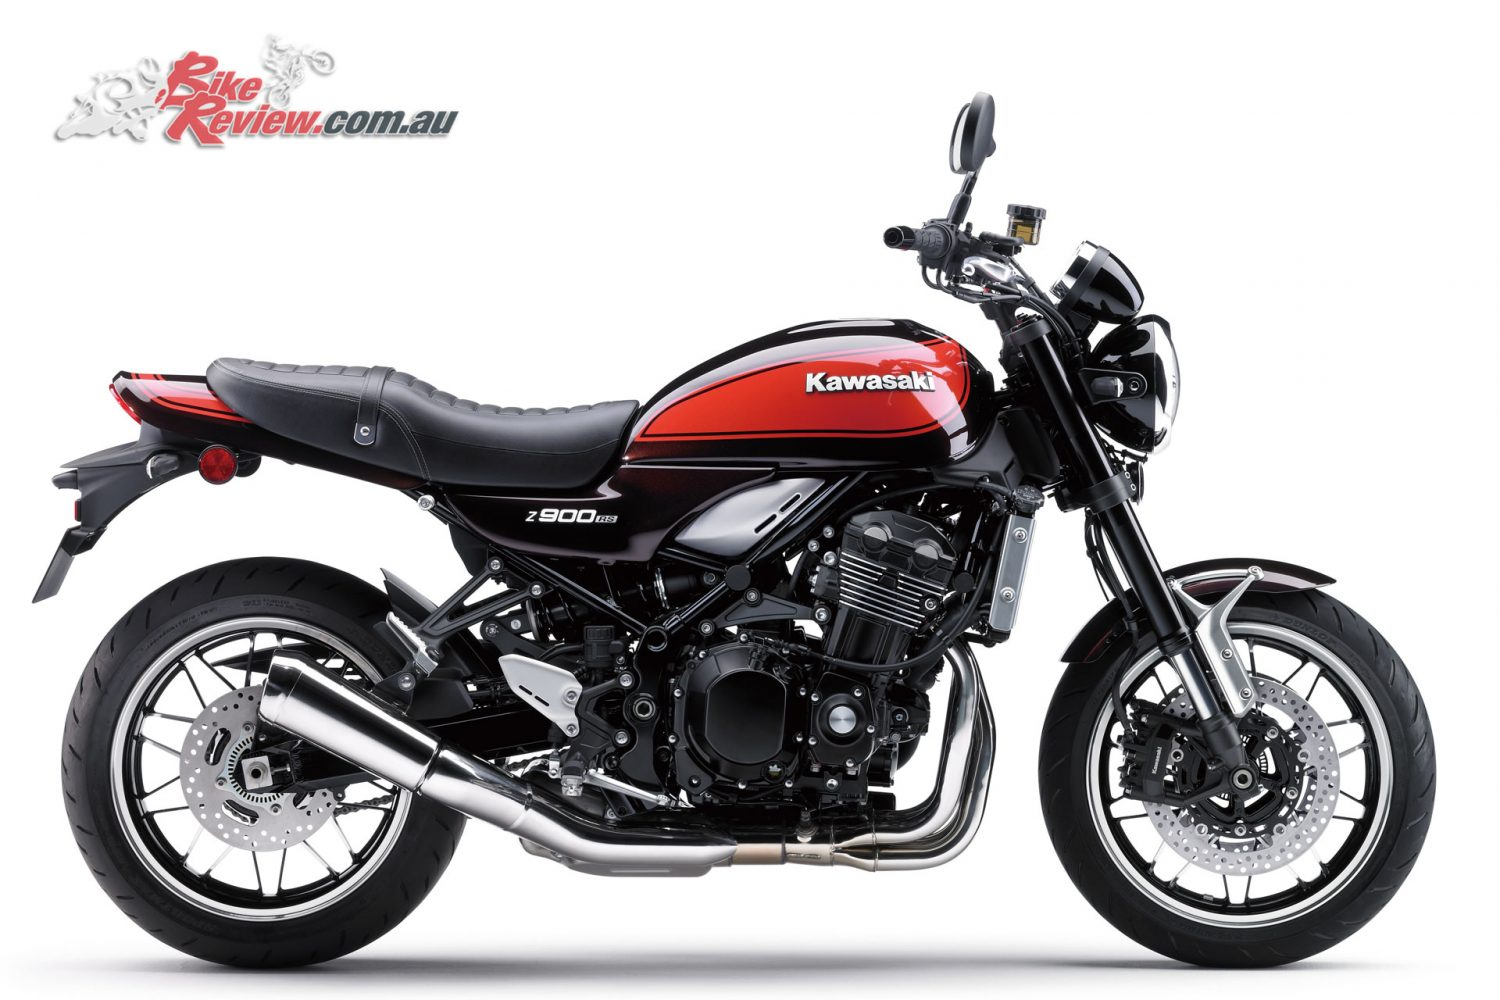 Honda Riding Gear >> All new Kawasaki Z900RS now available in Australia - Bike Review